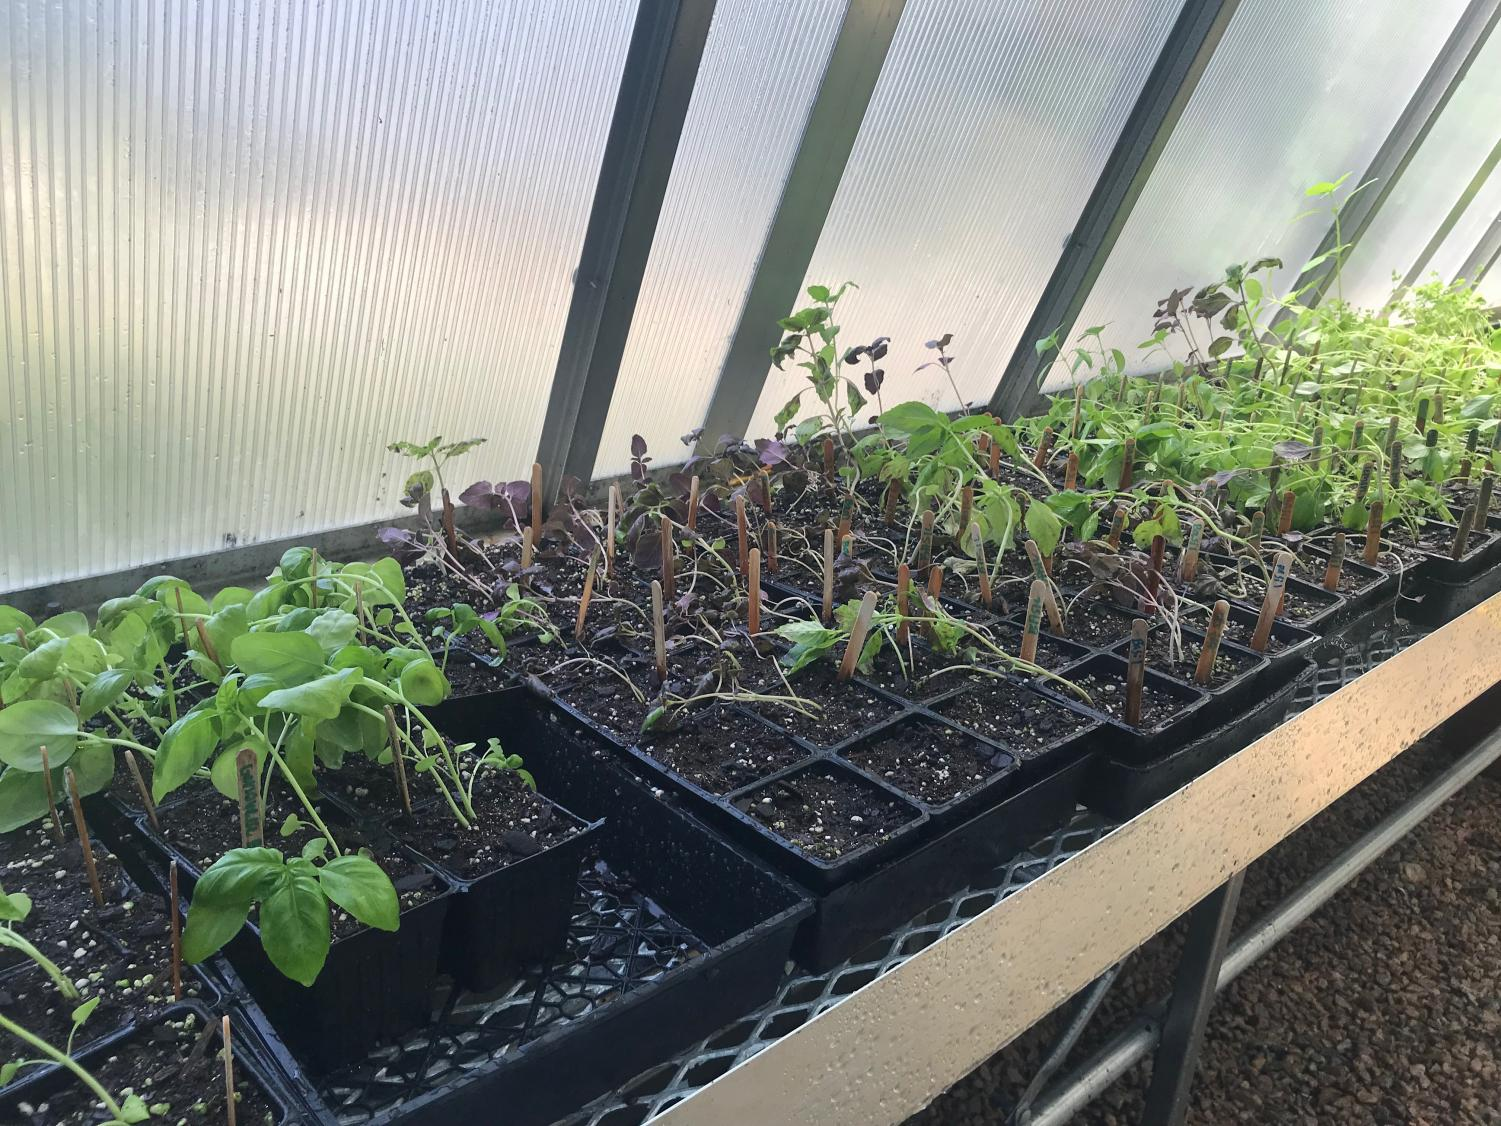 Using Millbrook's resources to their advantage, students grow herbs and other plants in our greenhouse. This gives them the opportunity to learn how to correctly grow food and practice environmentally friendly actions.